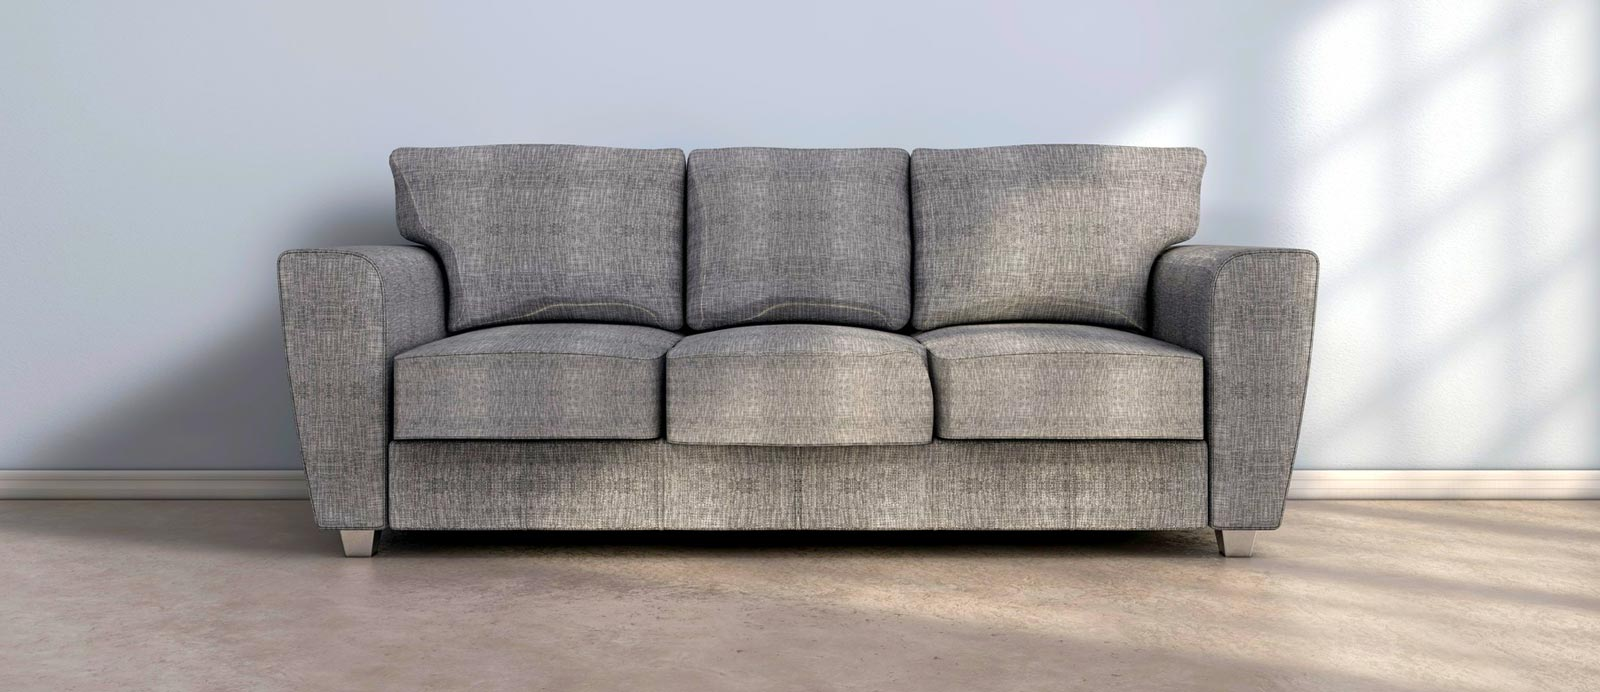 Sofa Upholstery Parts The Best Upholstery Cleaning Service Around - Prosteamuk